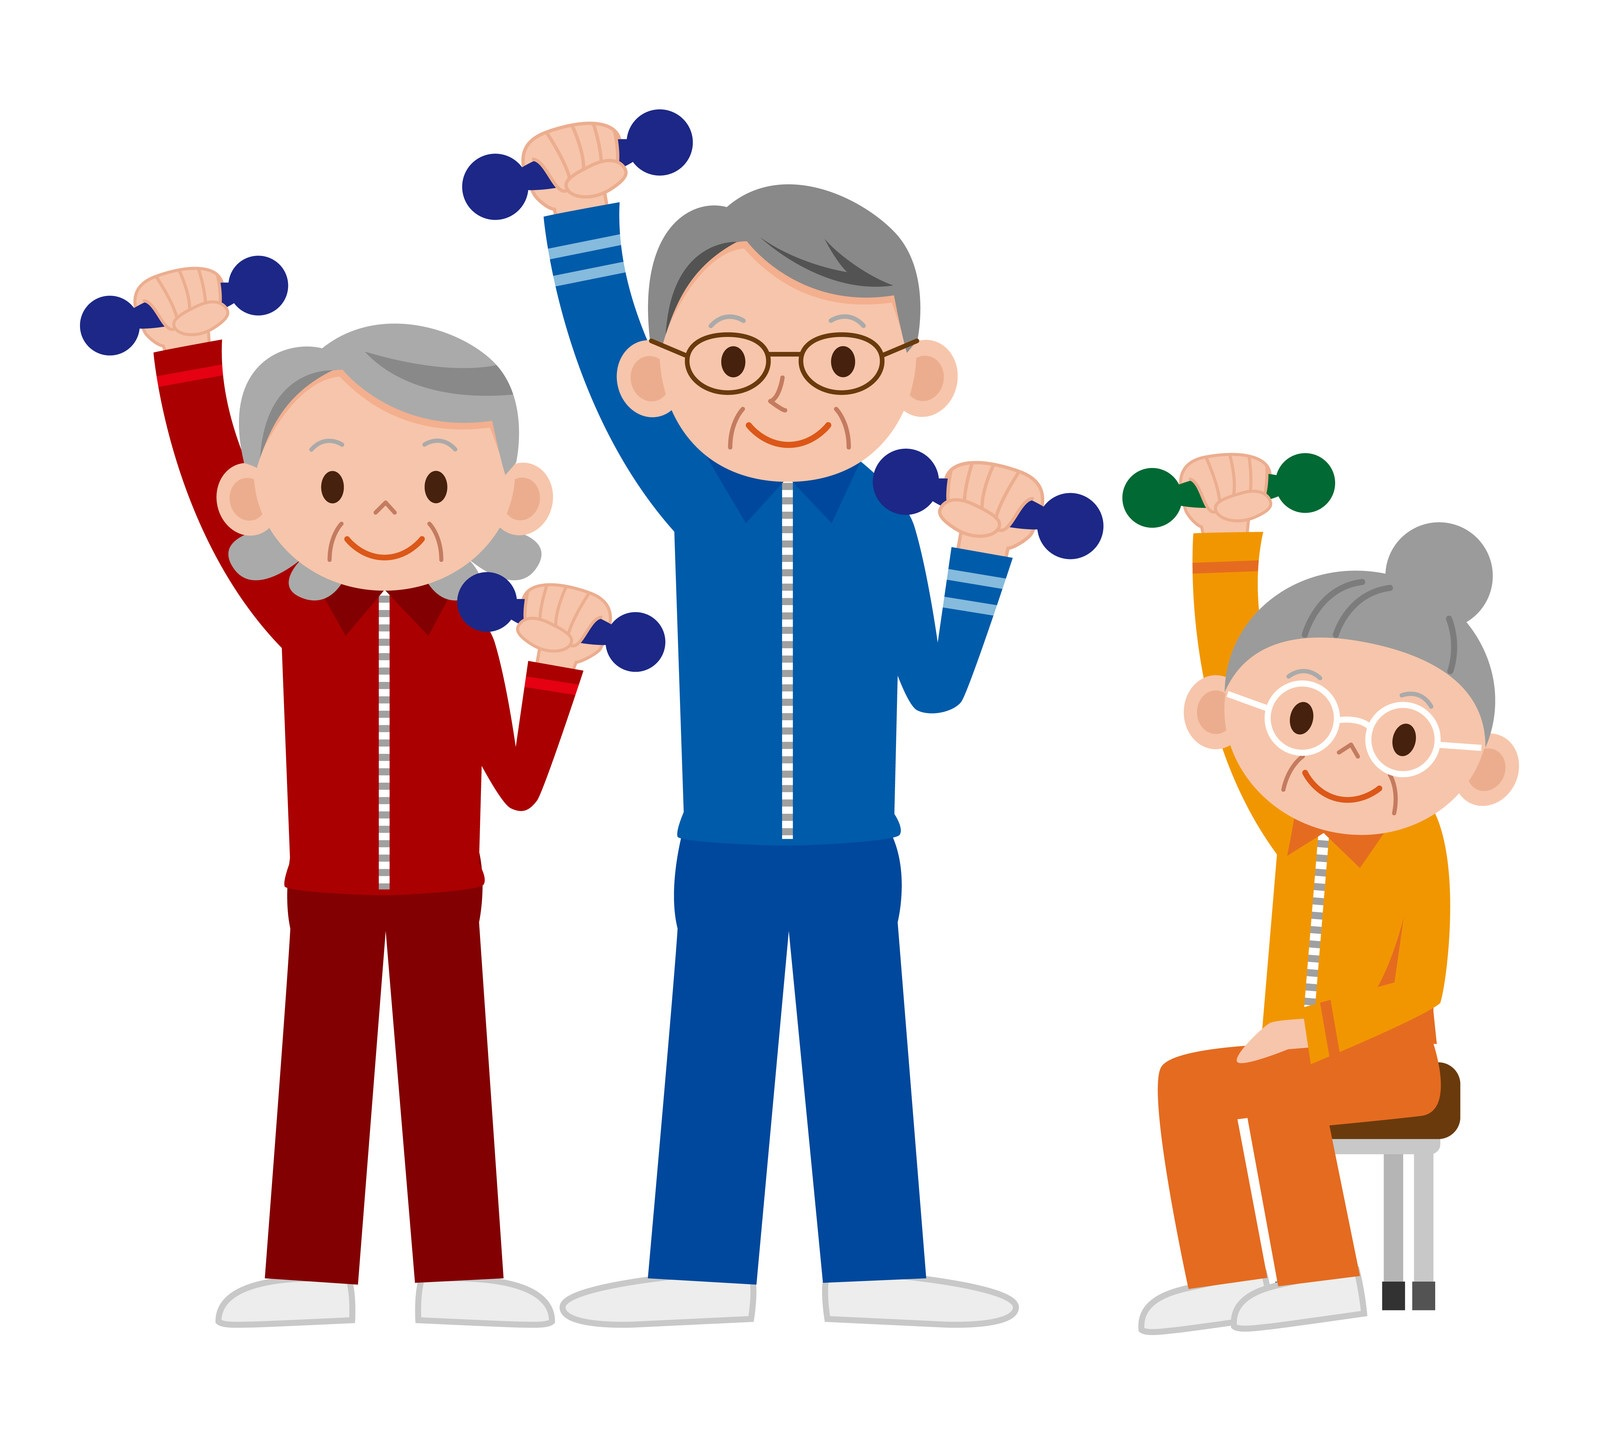 Old clipart group old person Clipart Stay collection and Group